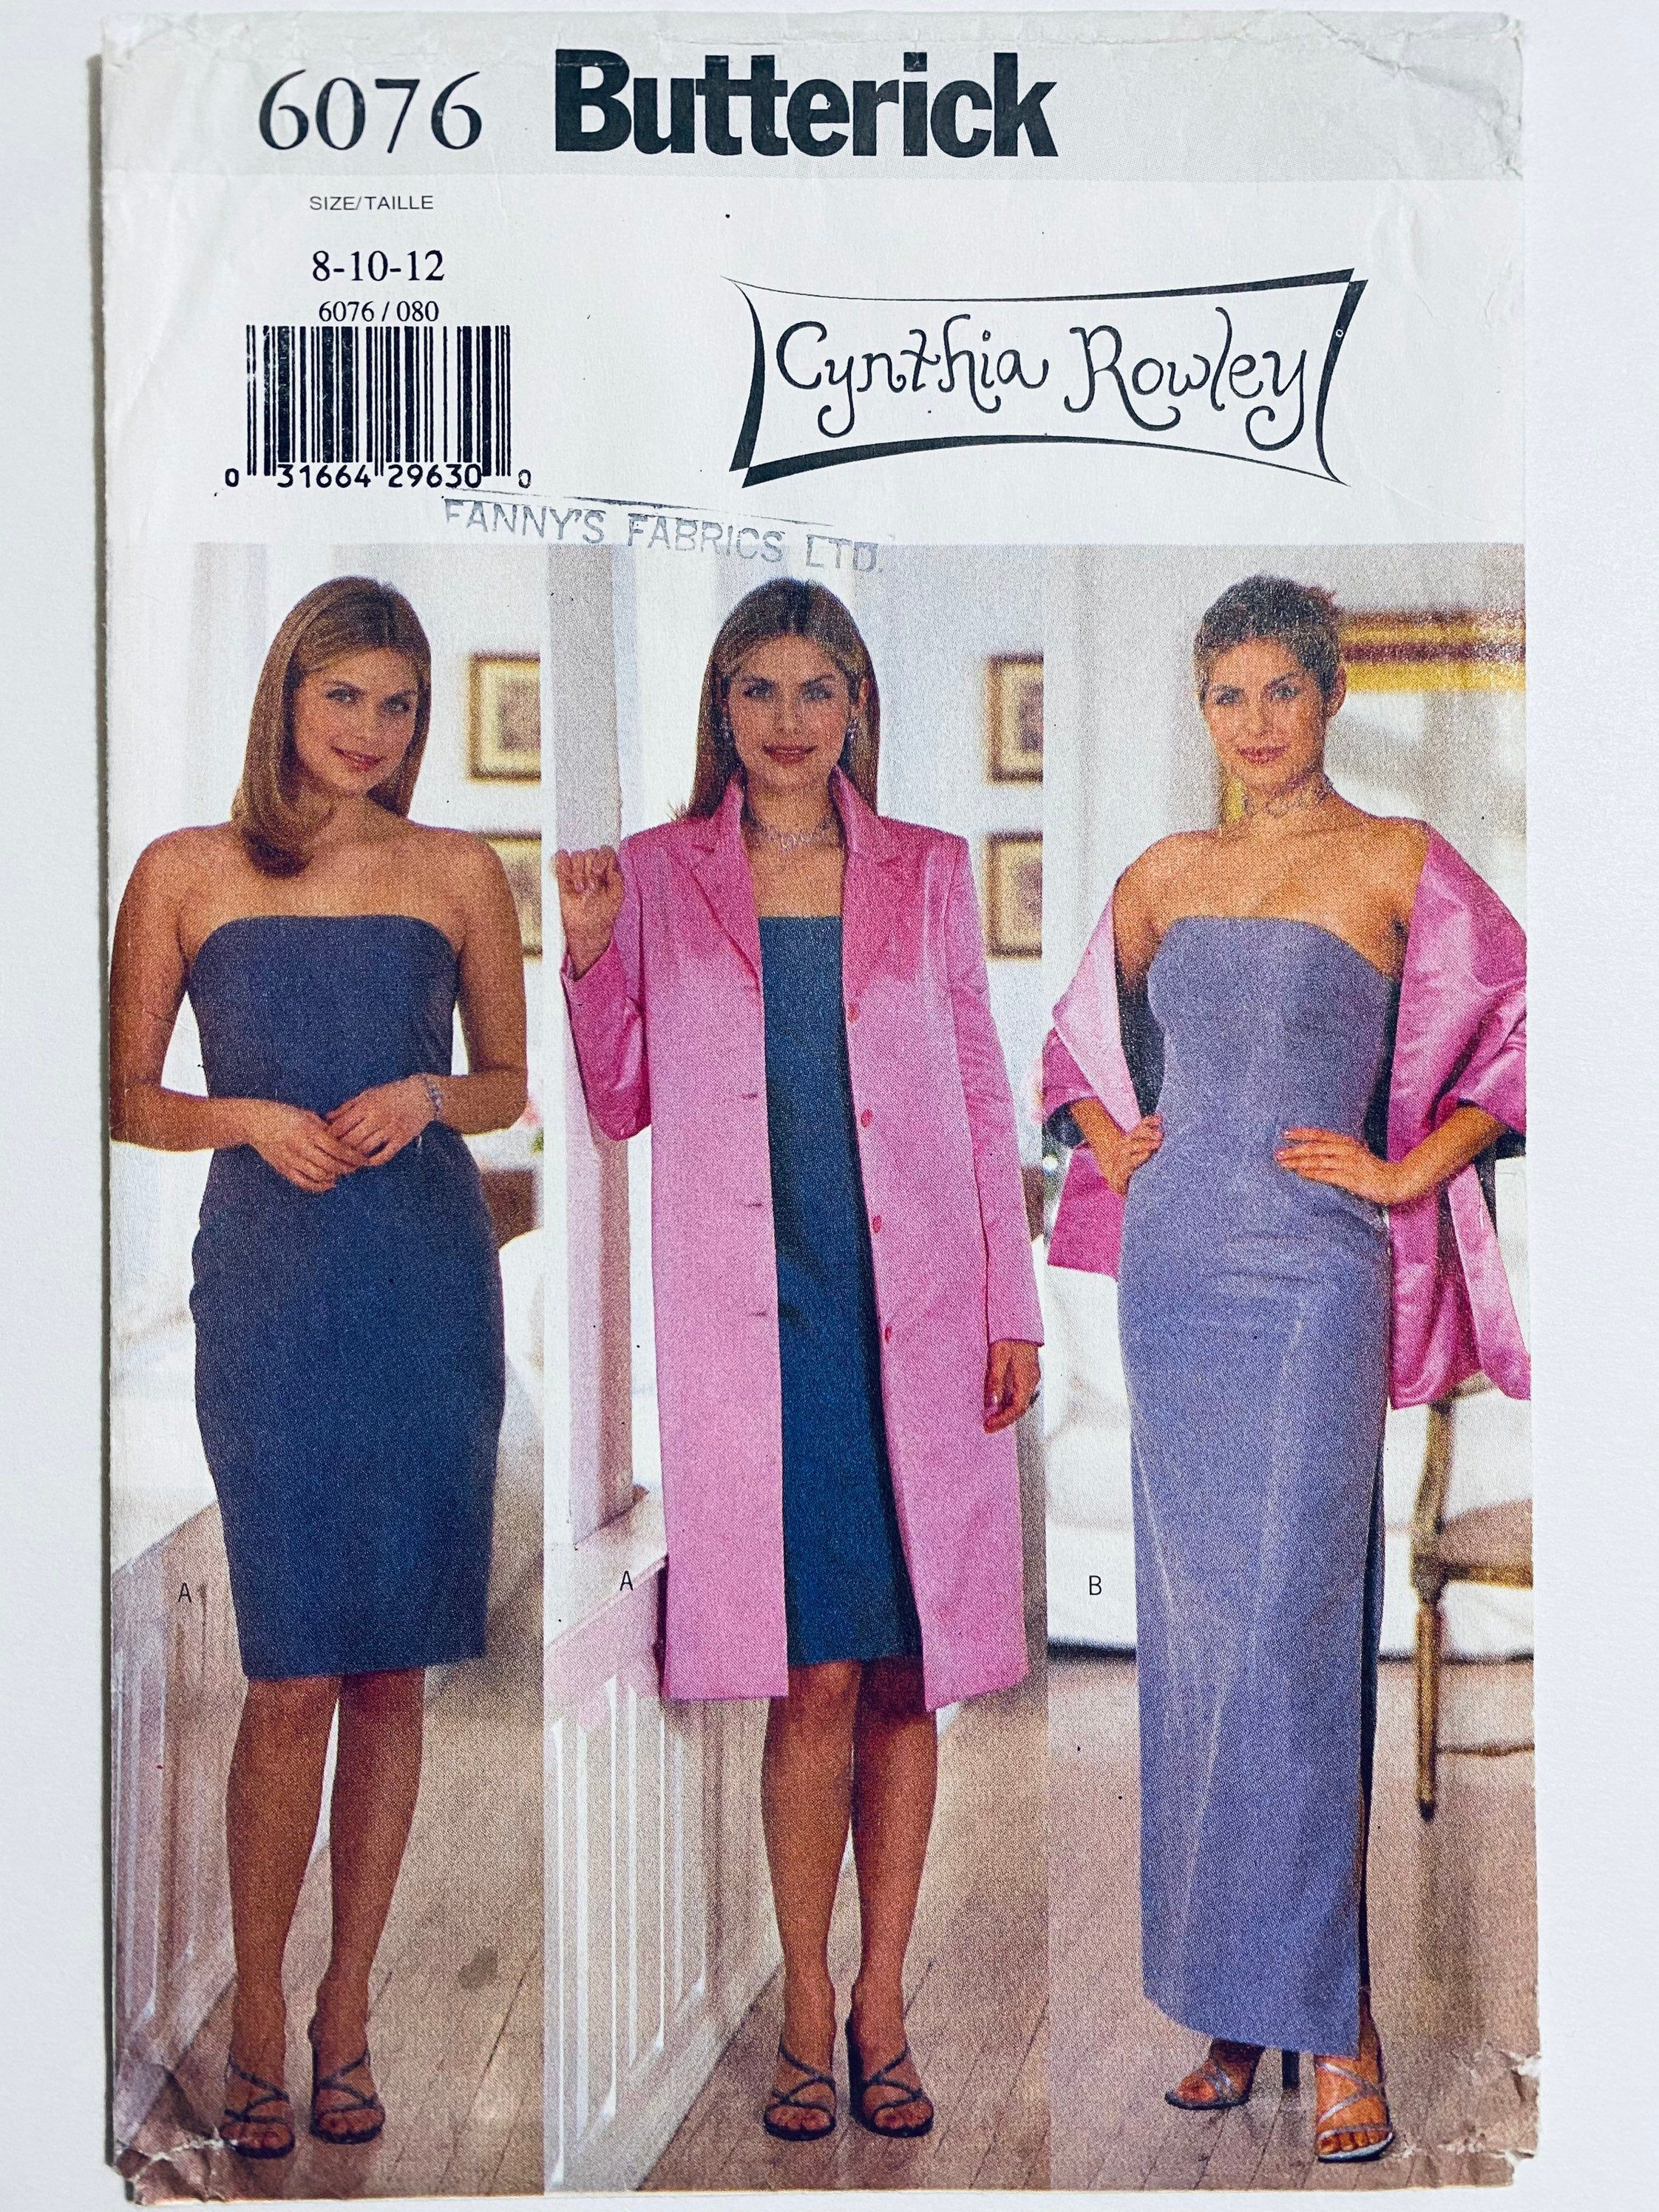 Butterick 6076 Bust 31 5 34 Vintage Butterick Sewing Etsy In 2021 Prom Dress Sewing Patterns Evening Dresses Prom Dress Sewing Pattern [ 2992 x 2244 Pixel ]